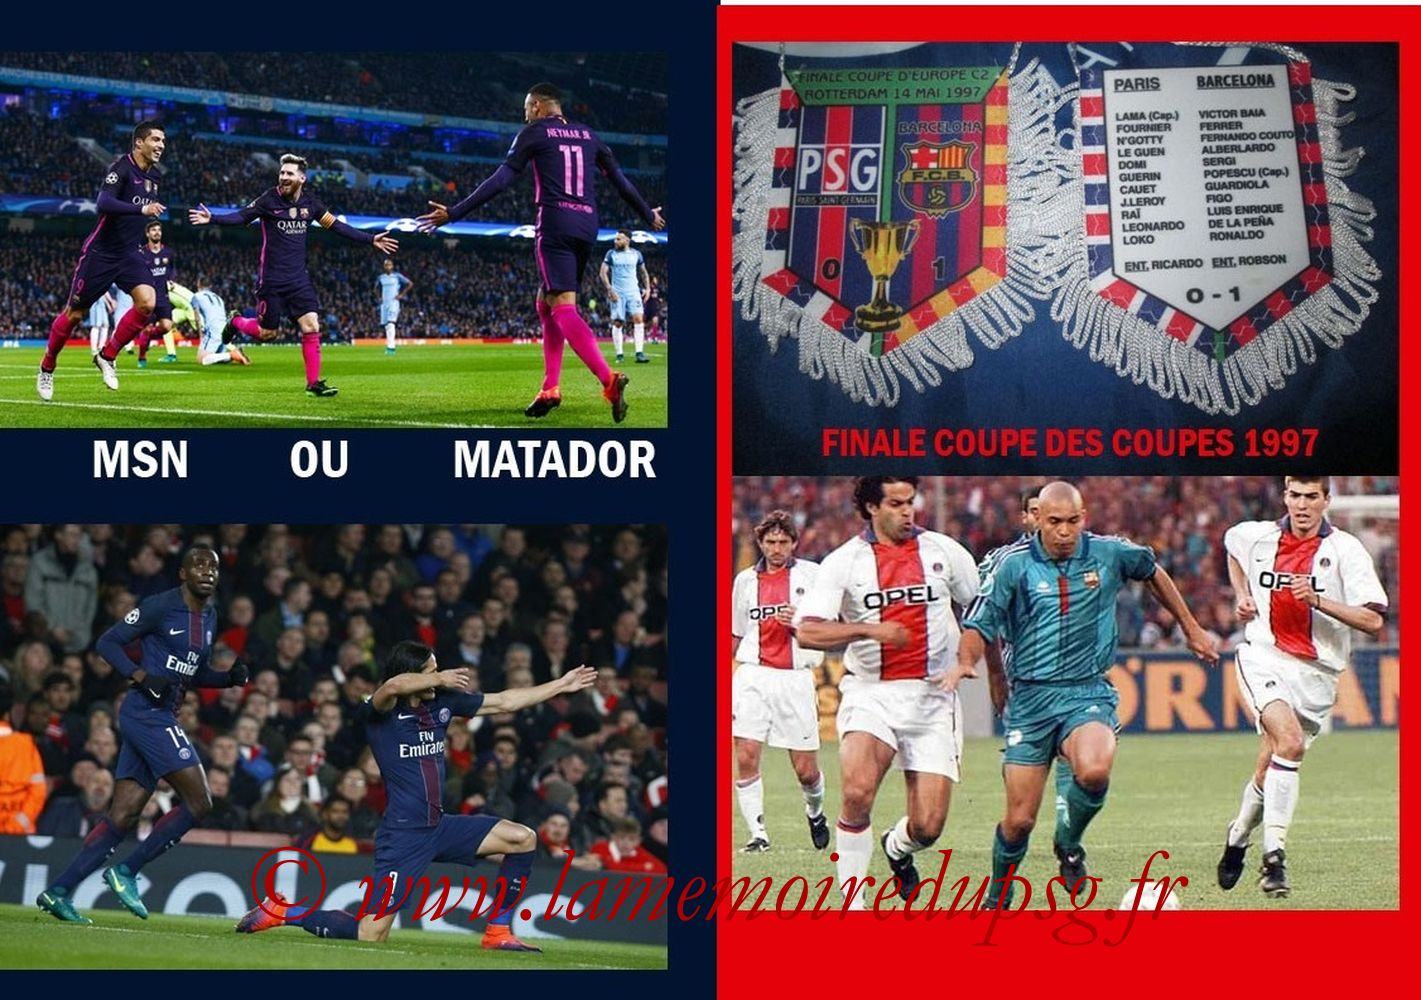 2017-02-14  PSG-Barcelone (8ème C1 aller, Programme pirate 2) - Pages 06 et 07